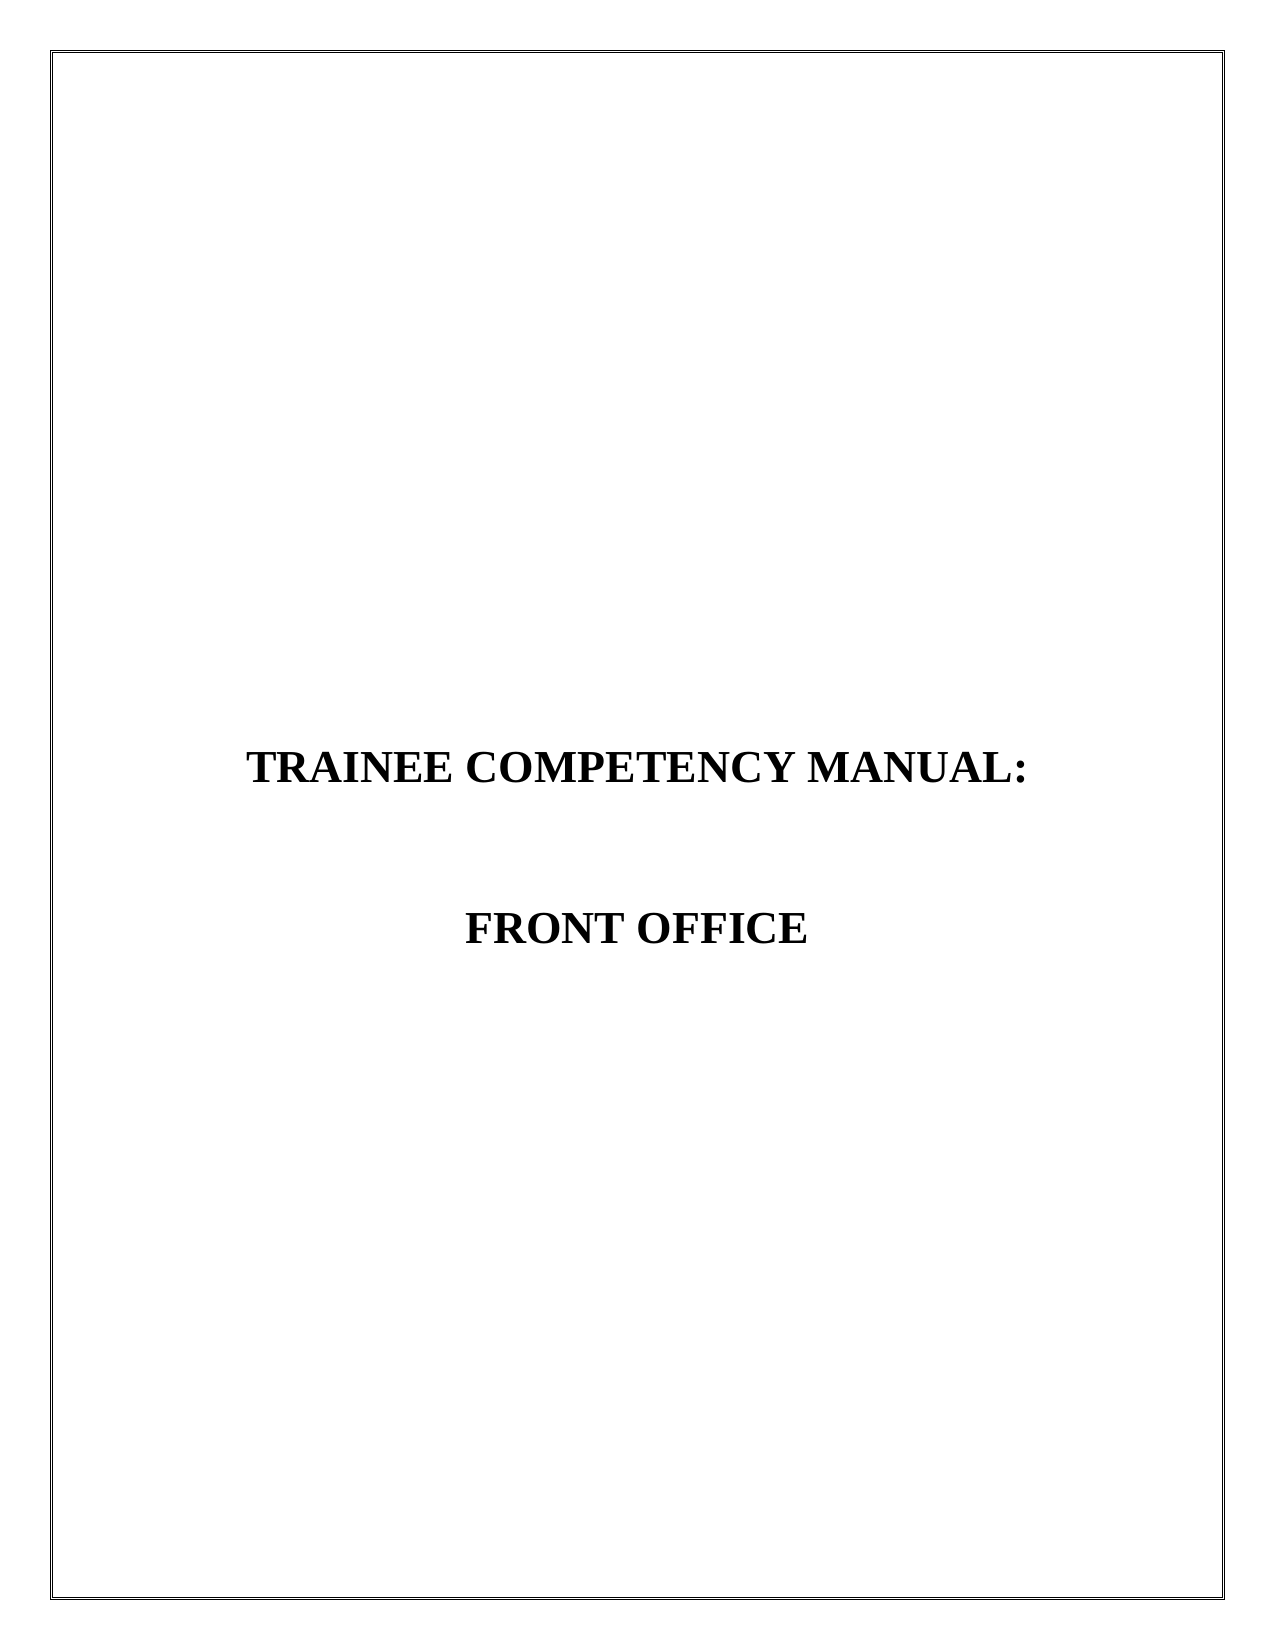 Trainee Competency Manual: Front Office